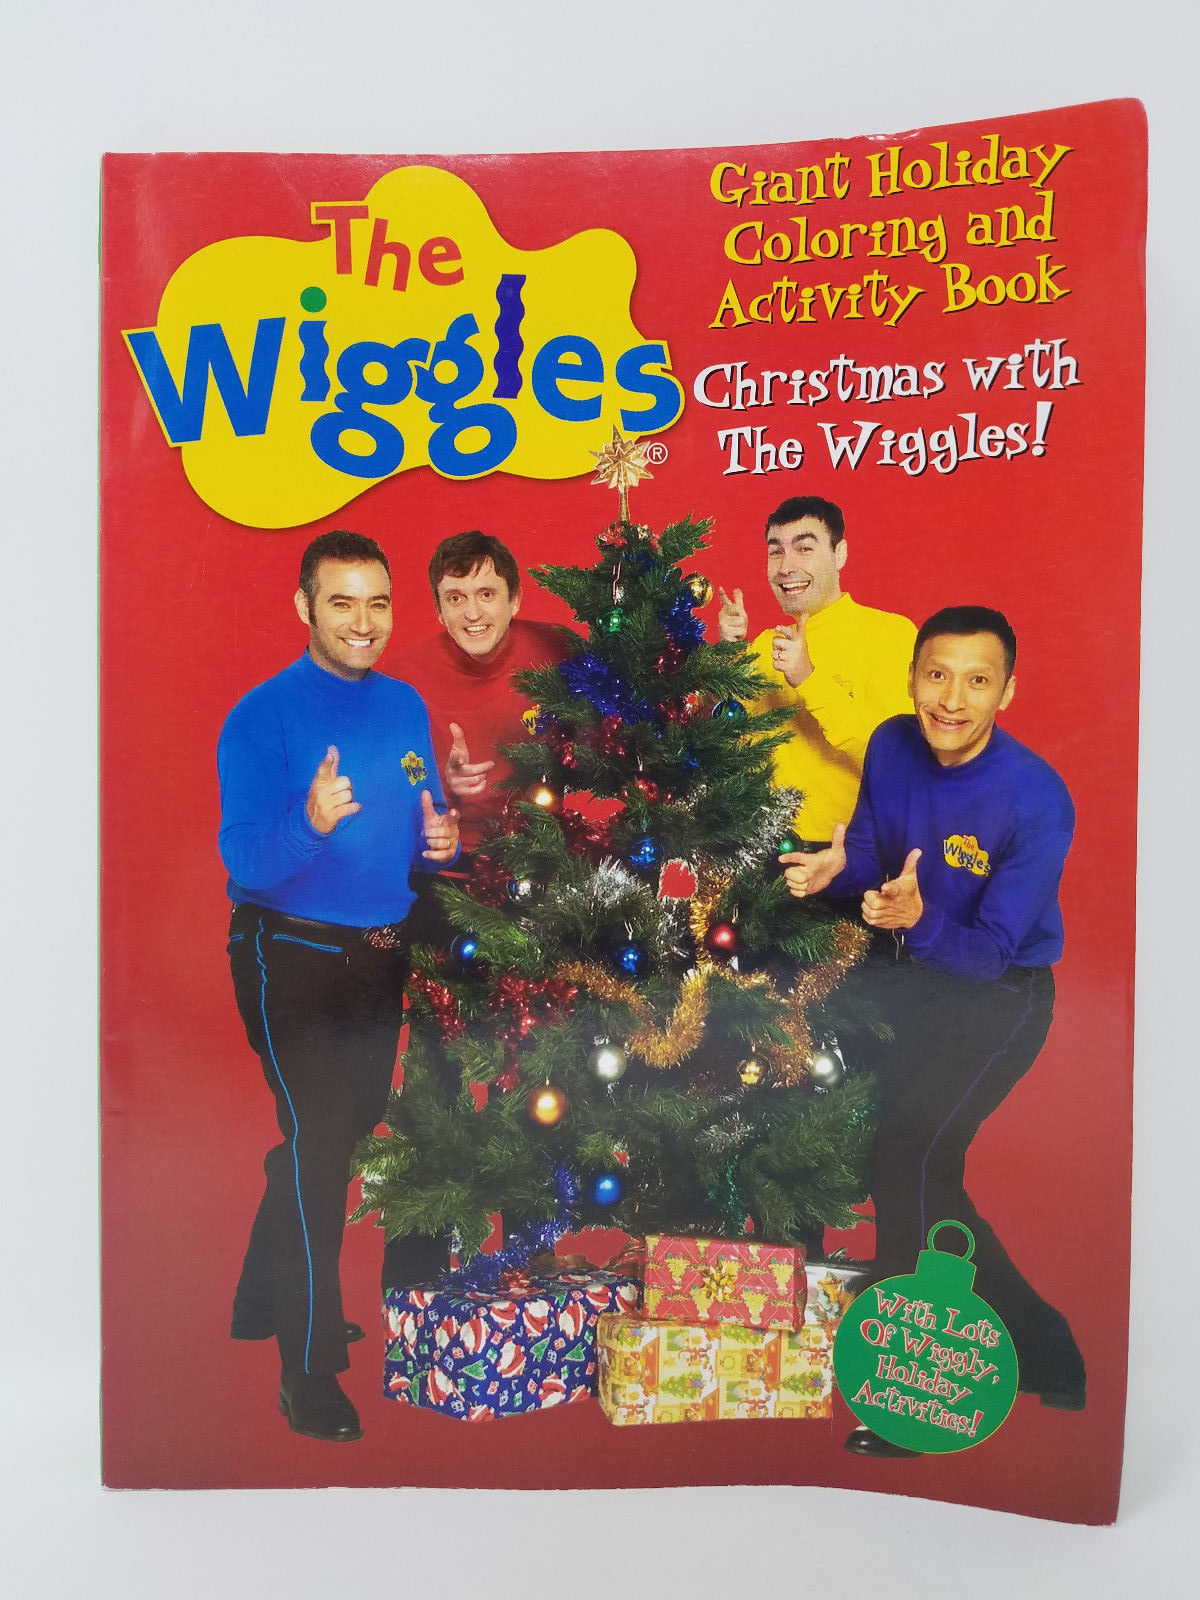 Christmas with The Wiggles!